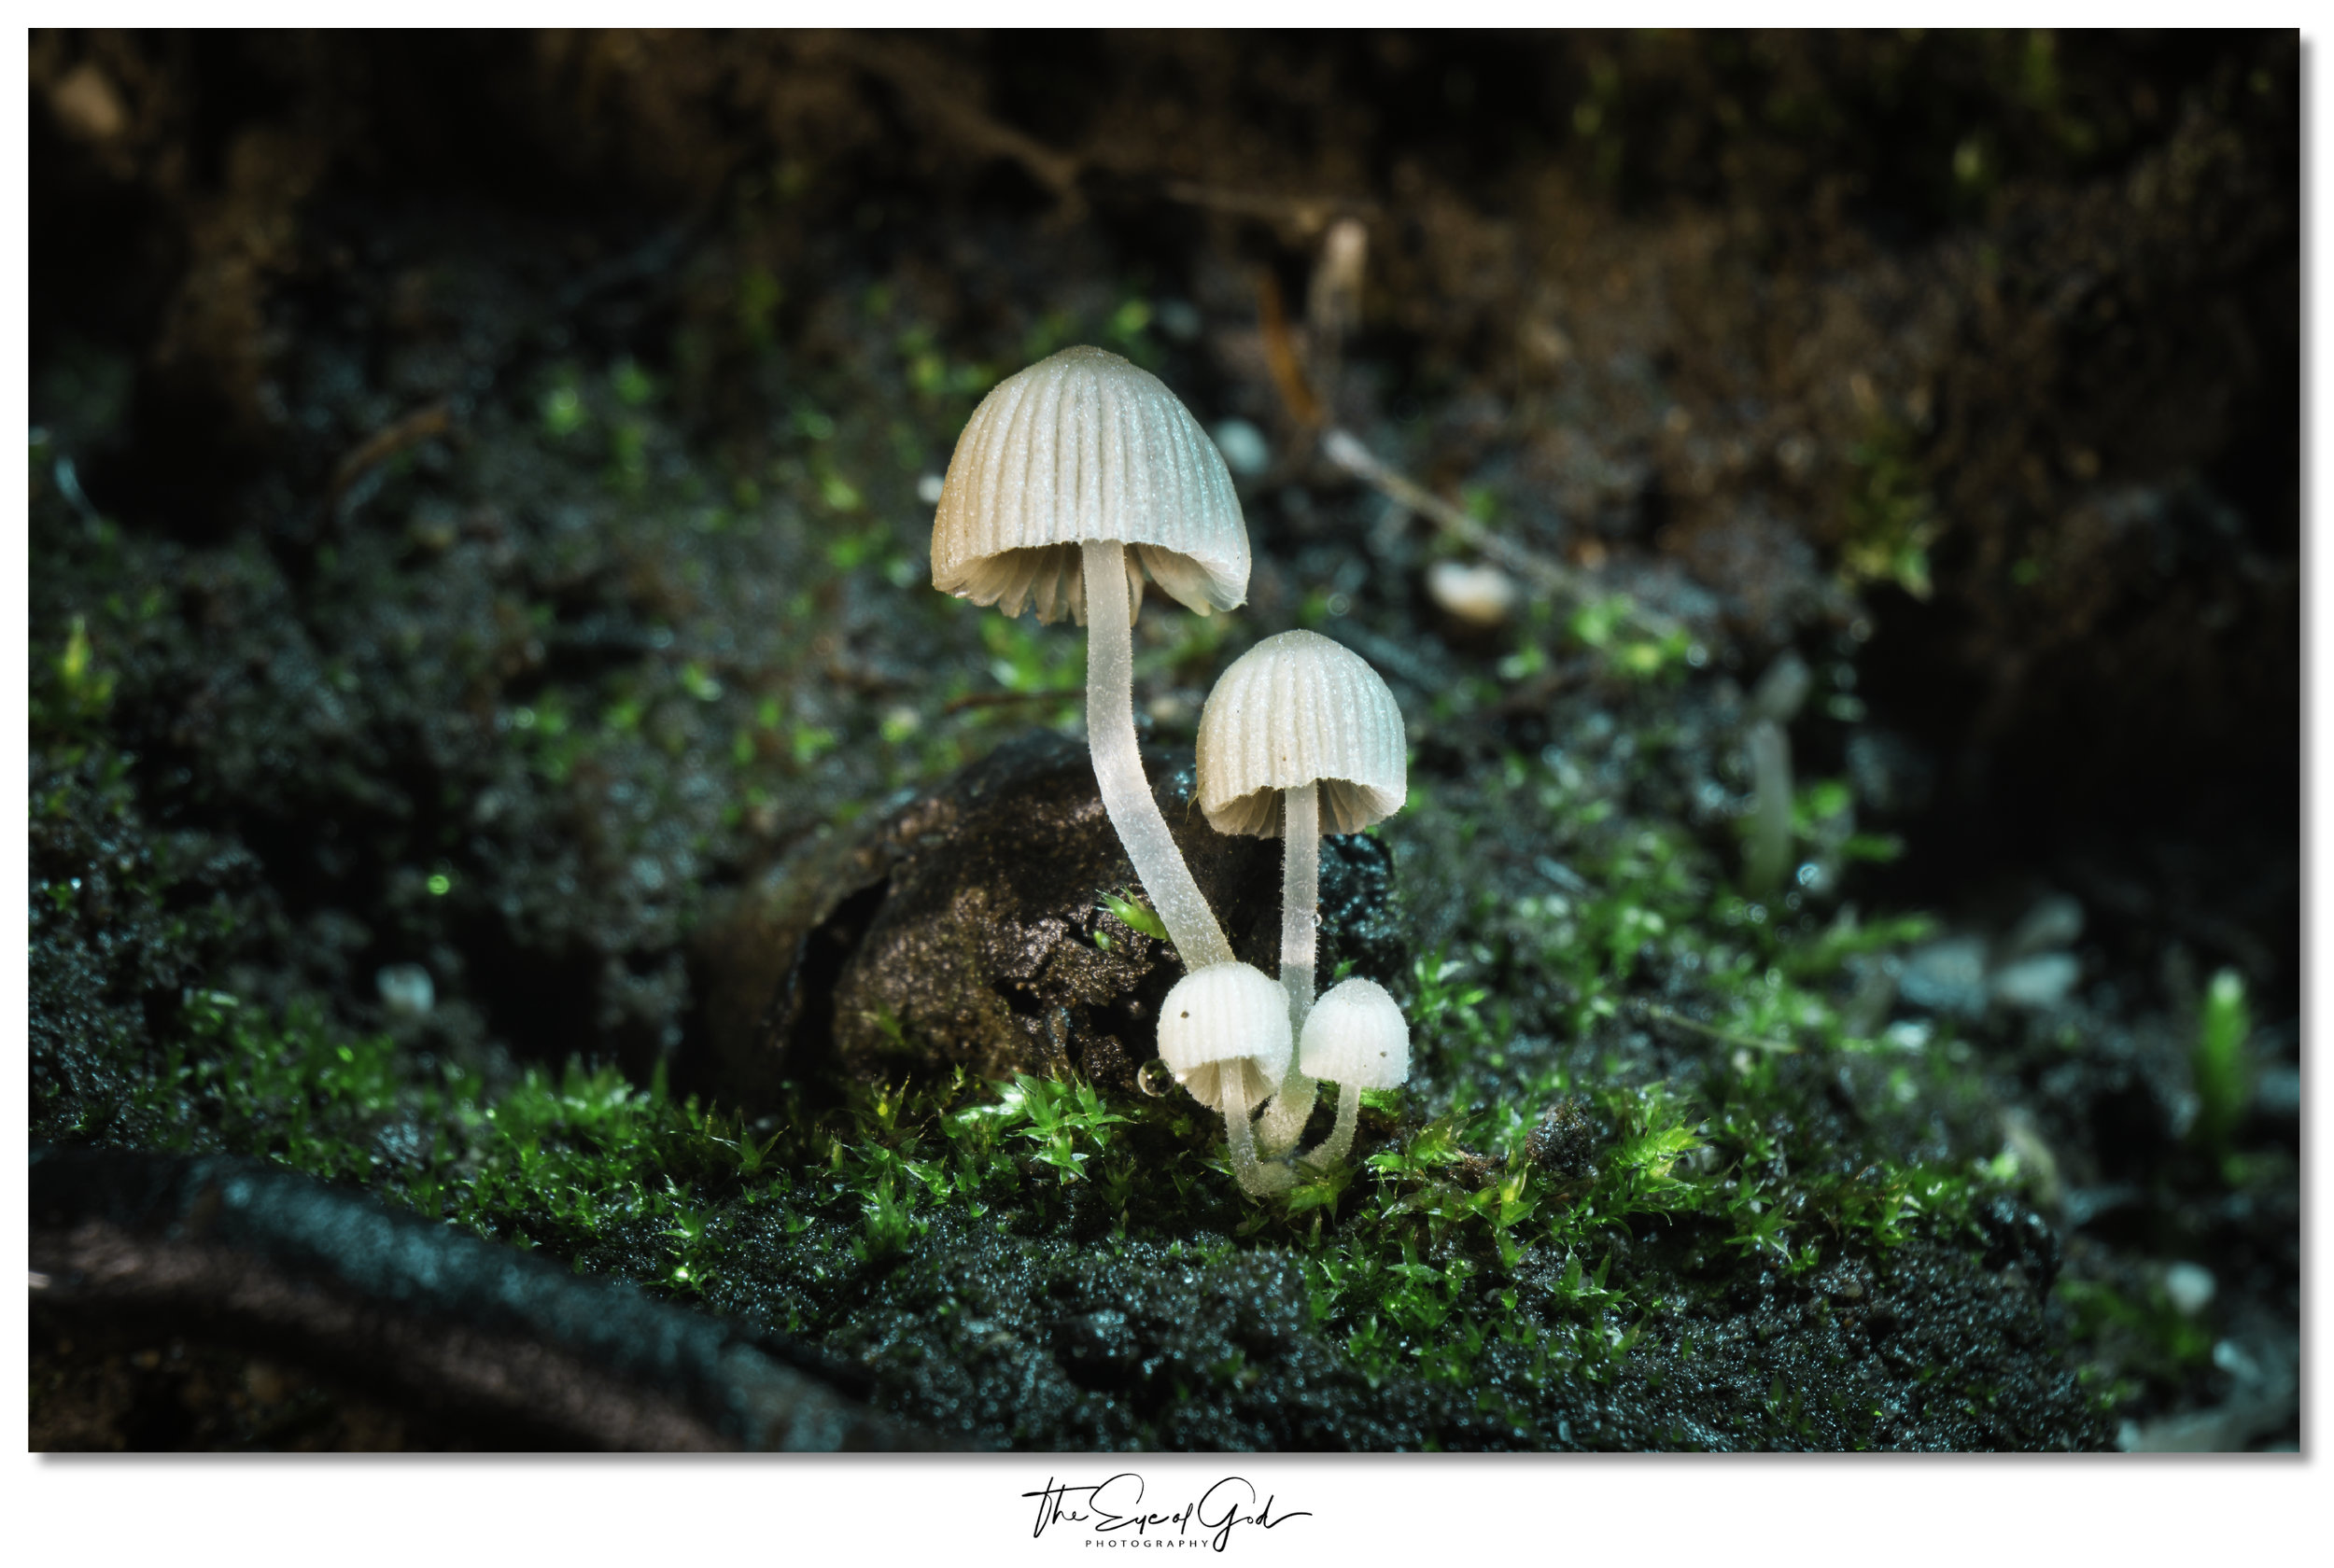 By removing the ambient lighting, I was able to create an attractive colour palette & illuminate my subject - the Fairy Ink Cap (Coprinellus Disseminatus)